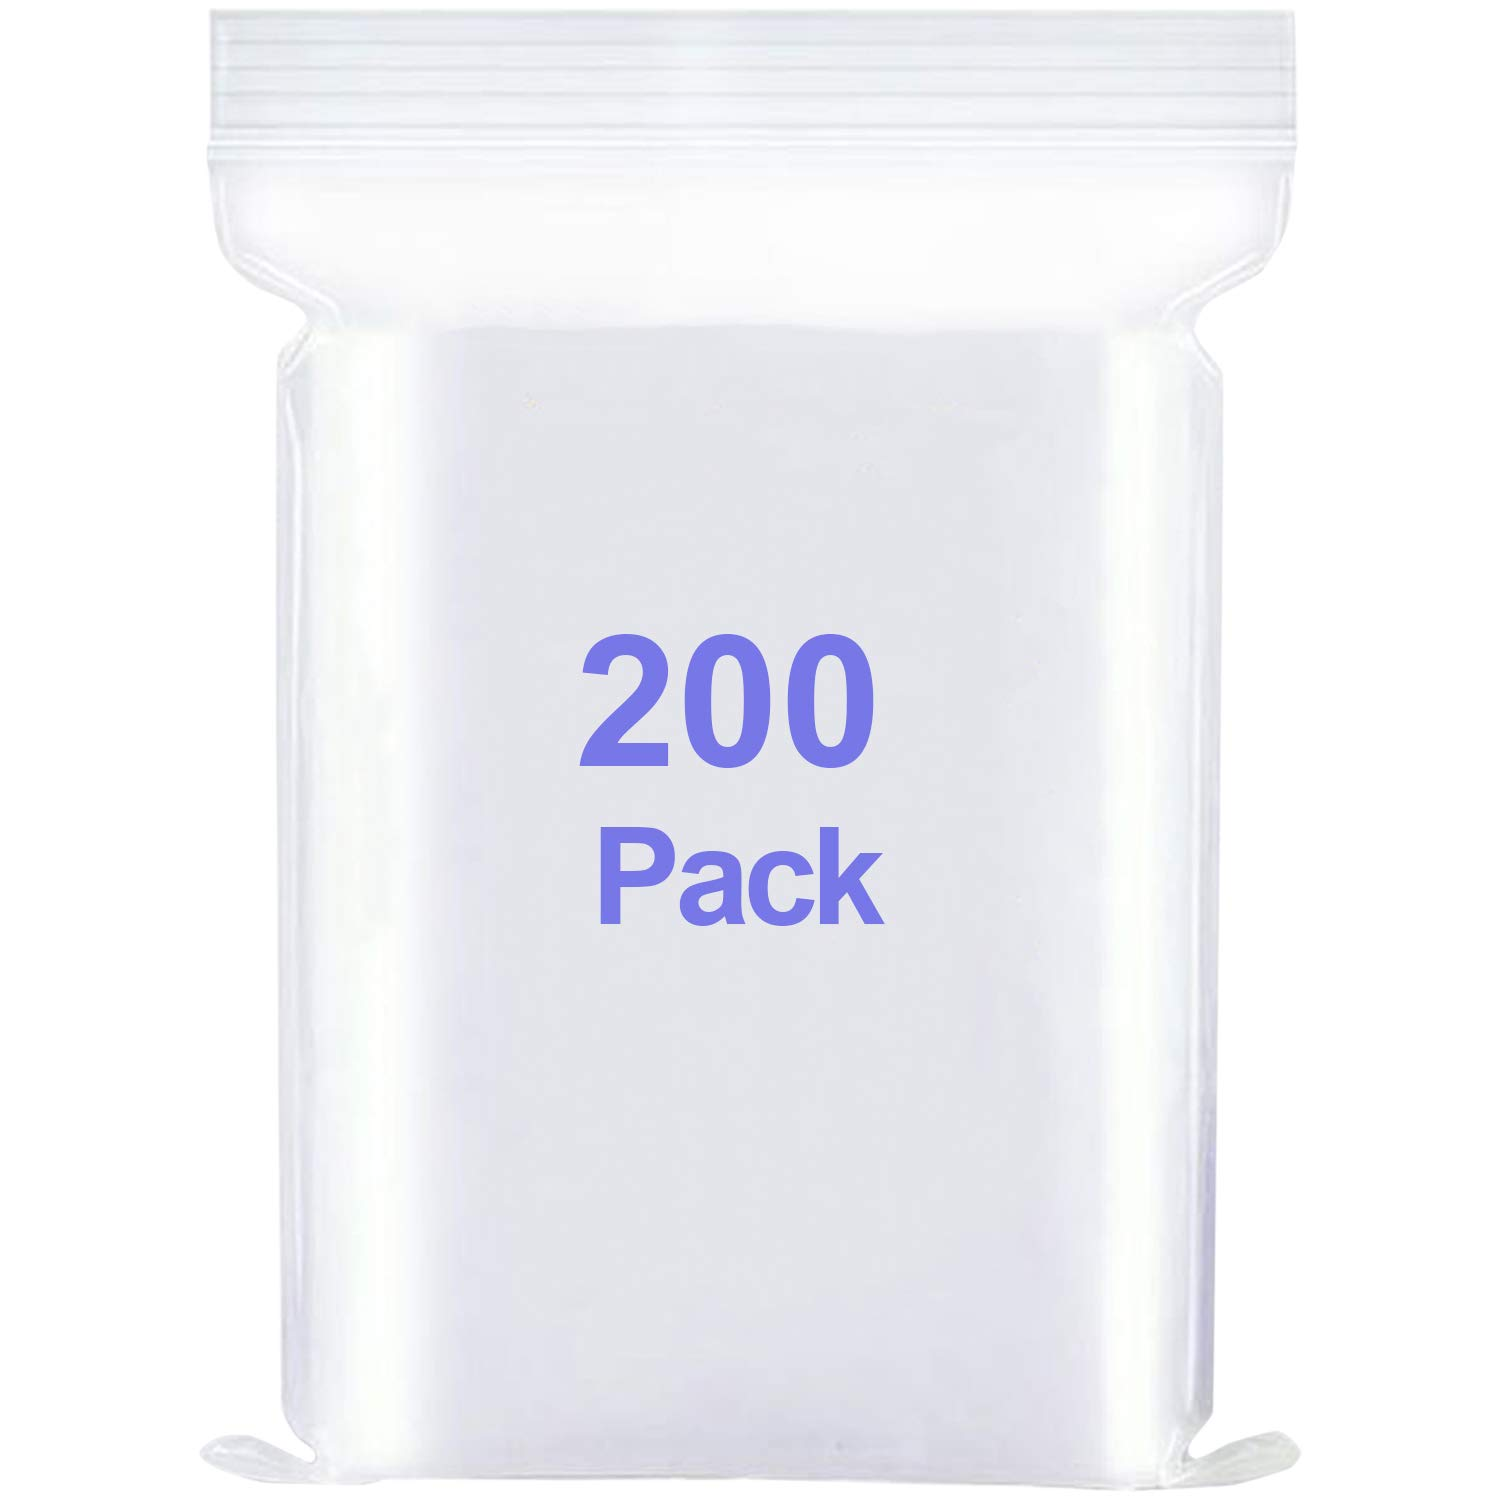 DXF725 Mini Small Plastic Bags with Resealable Zip-Lock (Multiple Sizes Available and Multipack) - Clear Reclosable Poly Zipper Lock Storage Bag (4x7 inch 200 pcs)